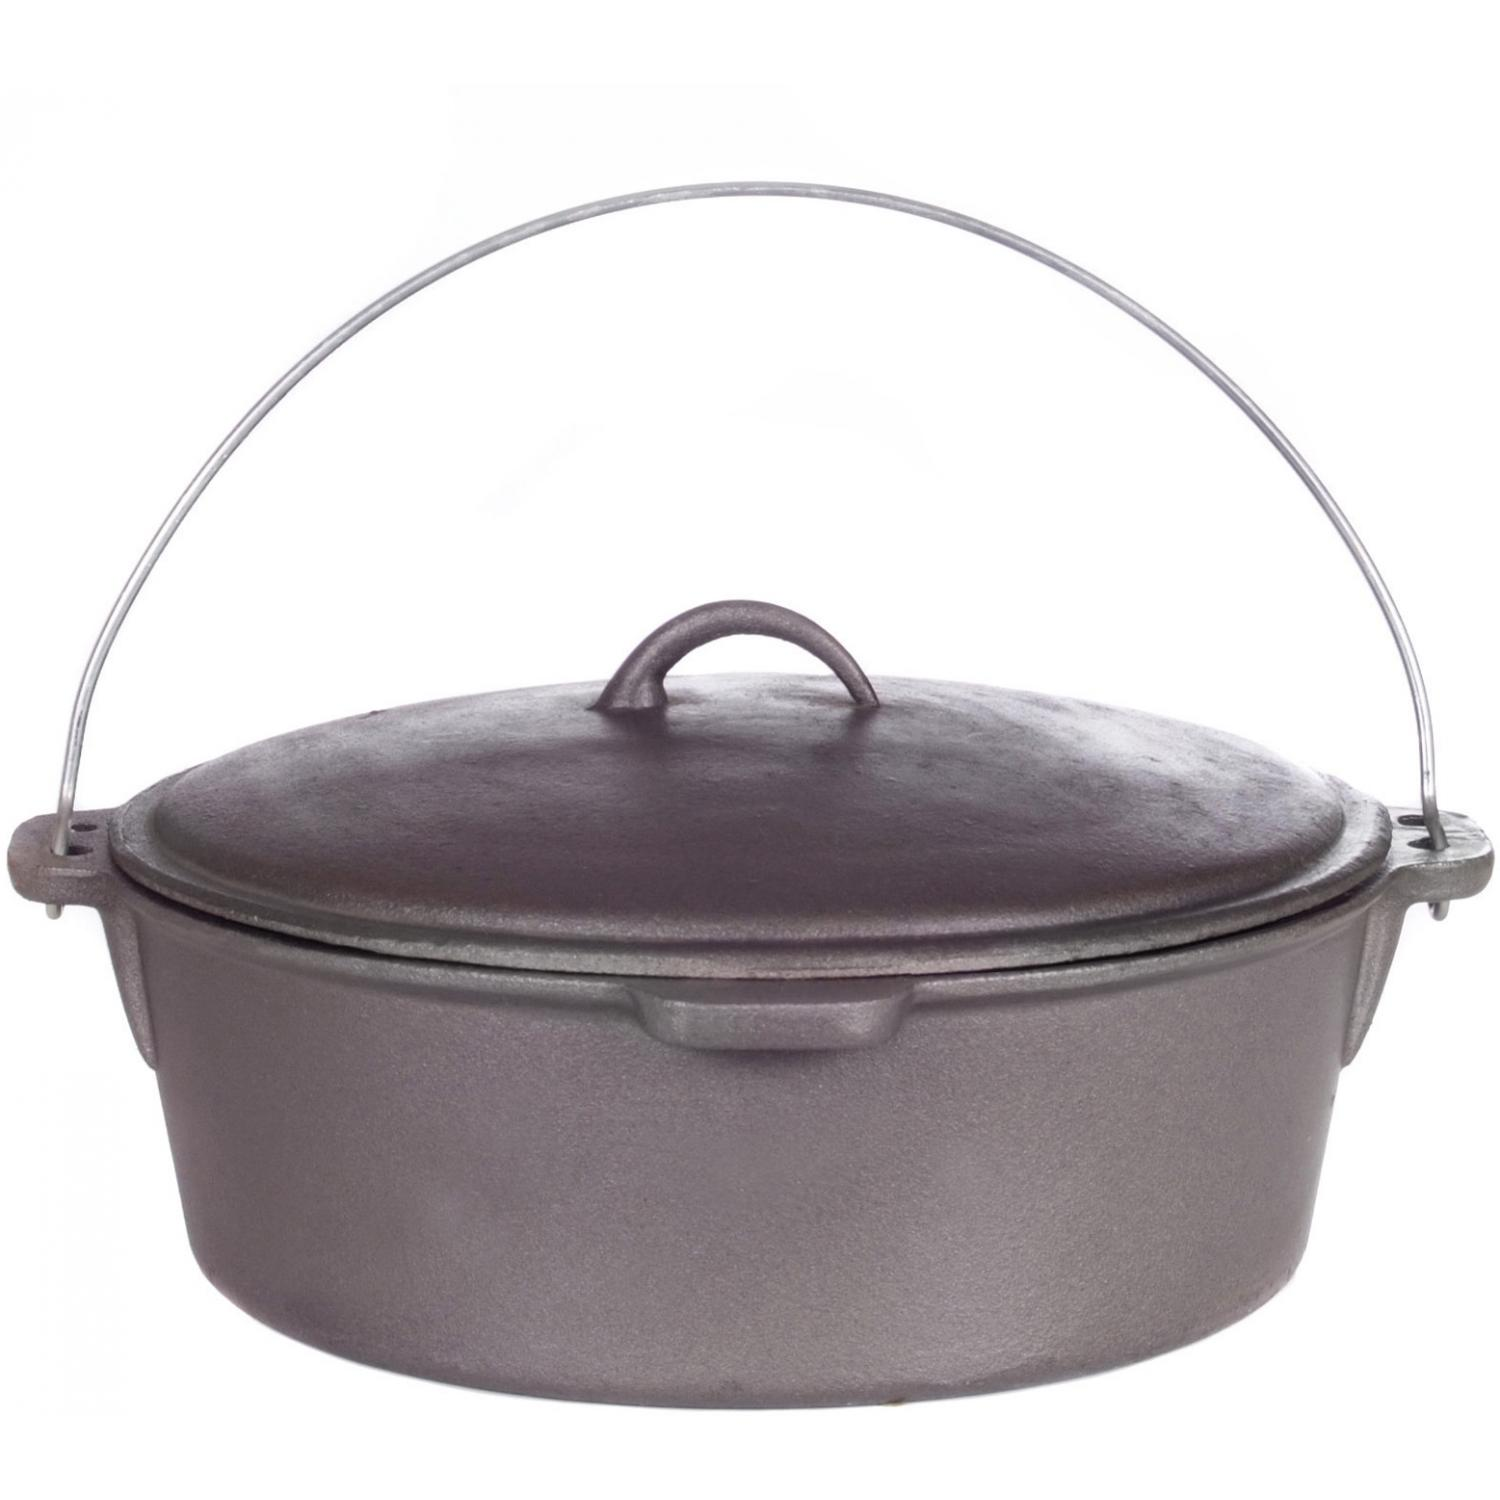 Cajun Cookware Dutch Ovens 12 Quart Cast Iron Dutch Oven